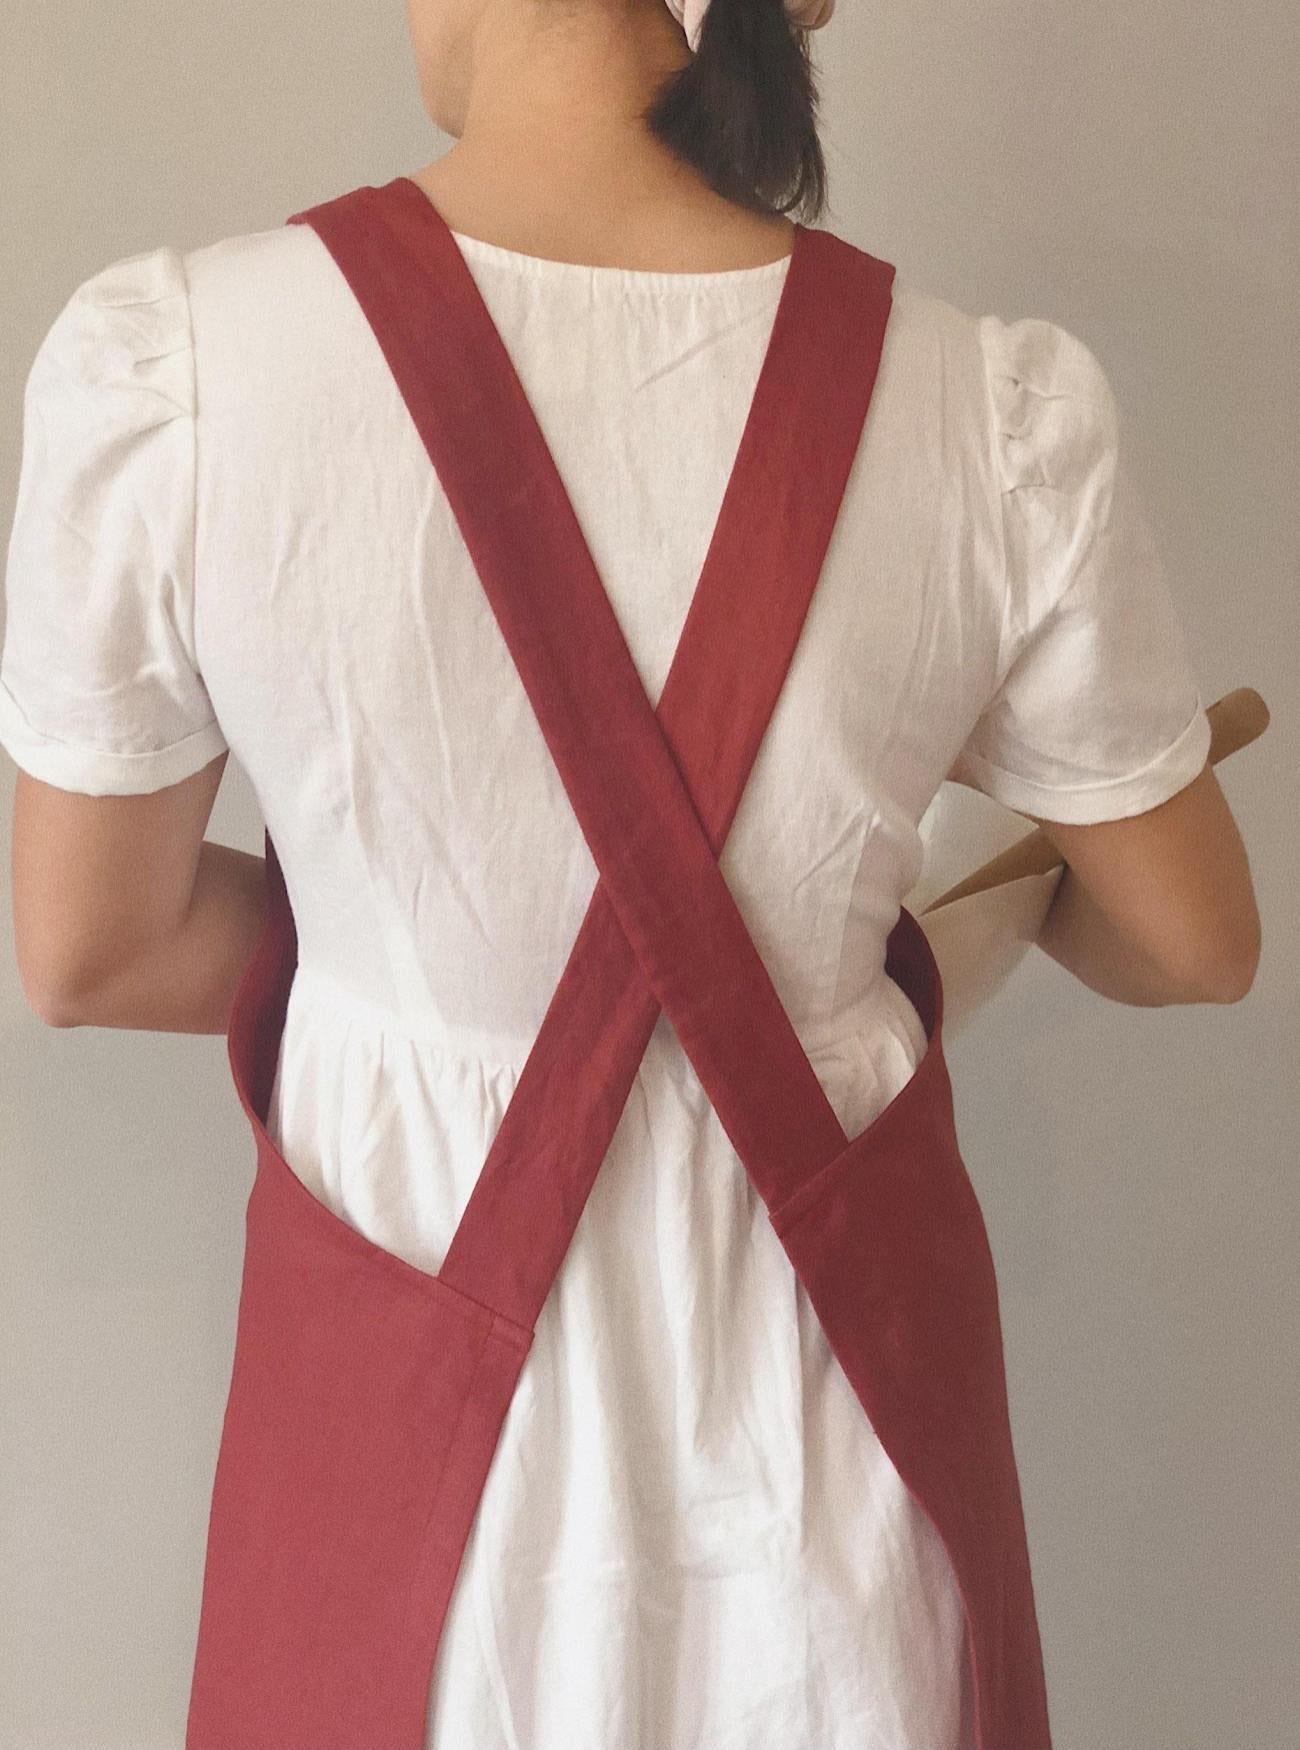 Merlot Red, Japanese Apron